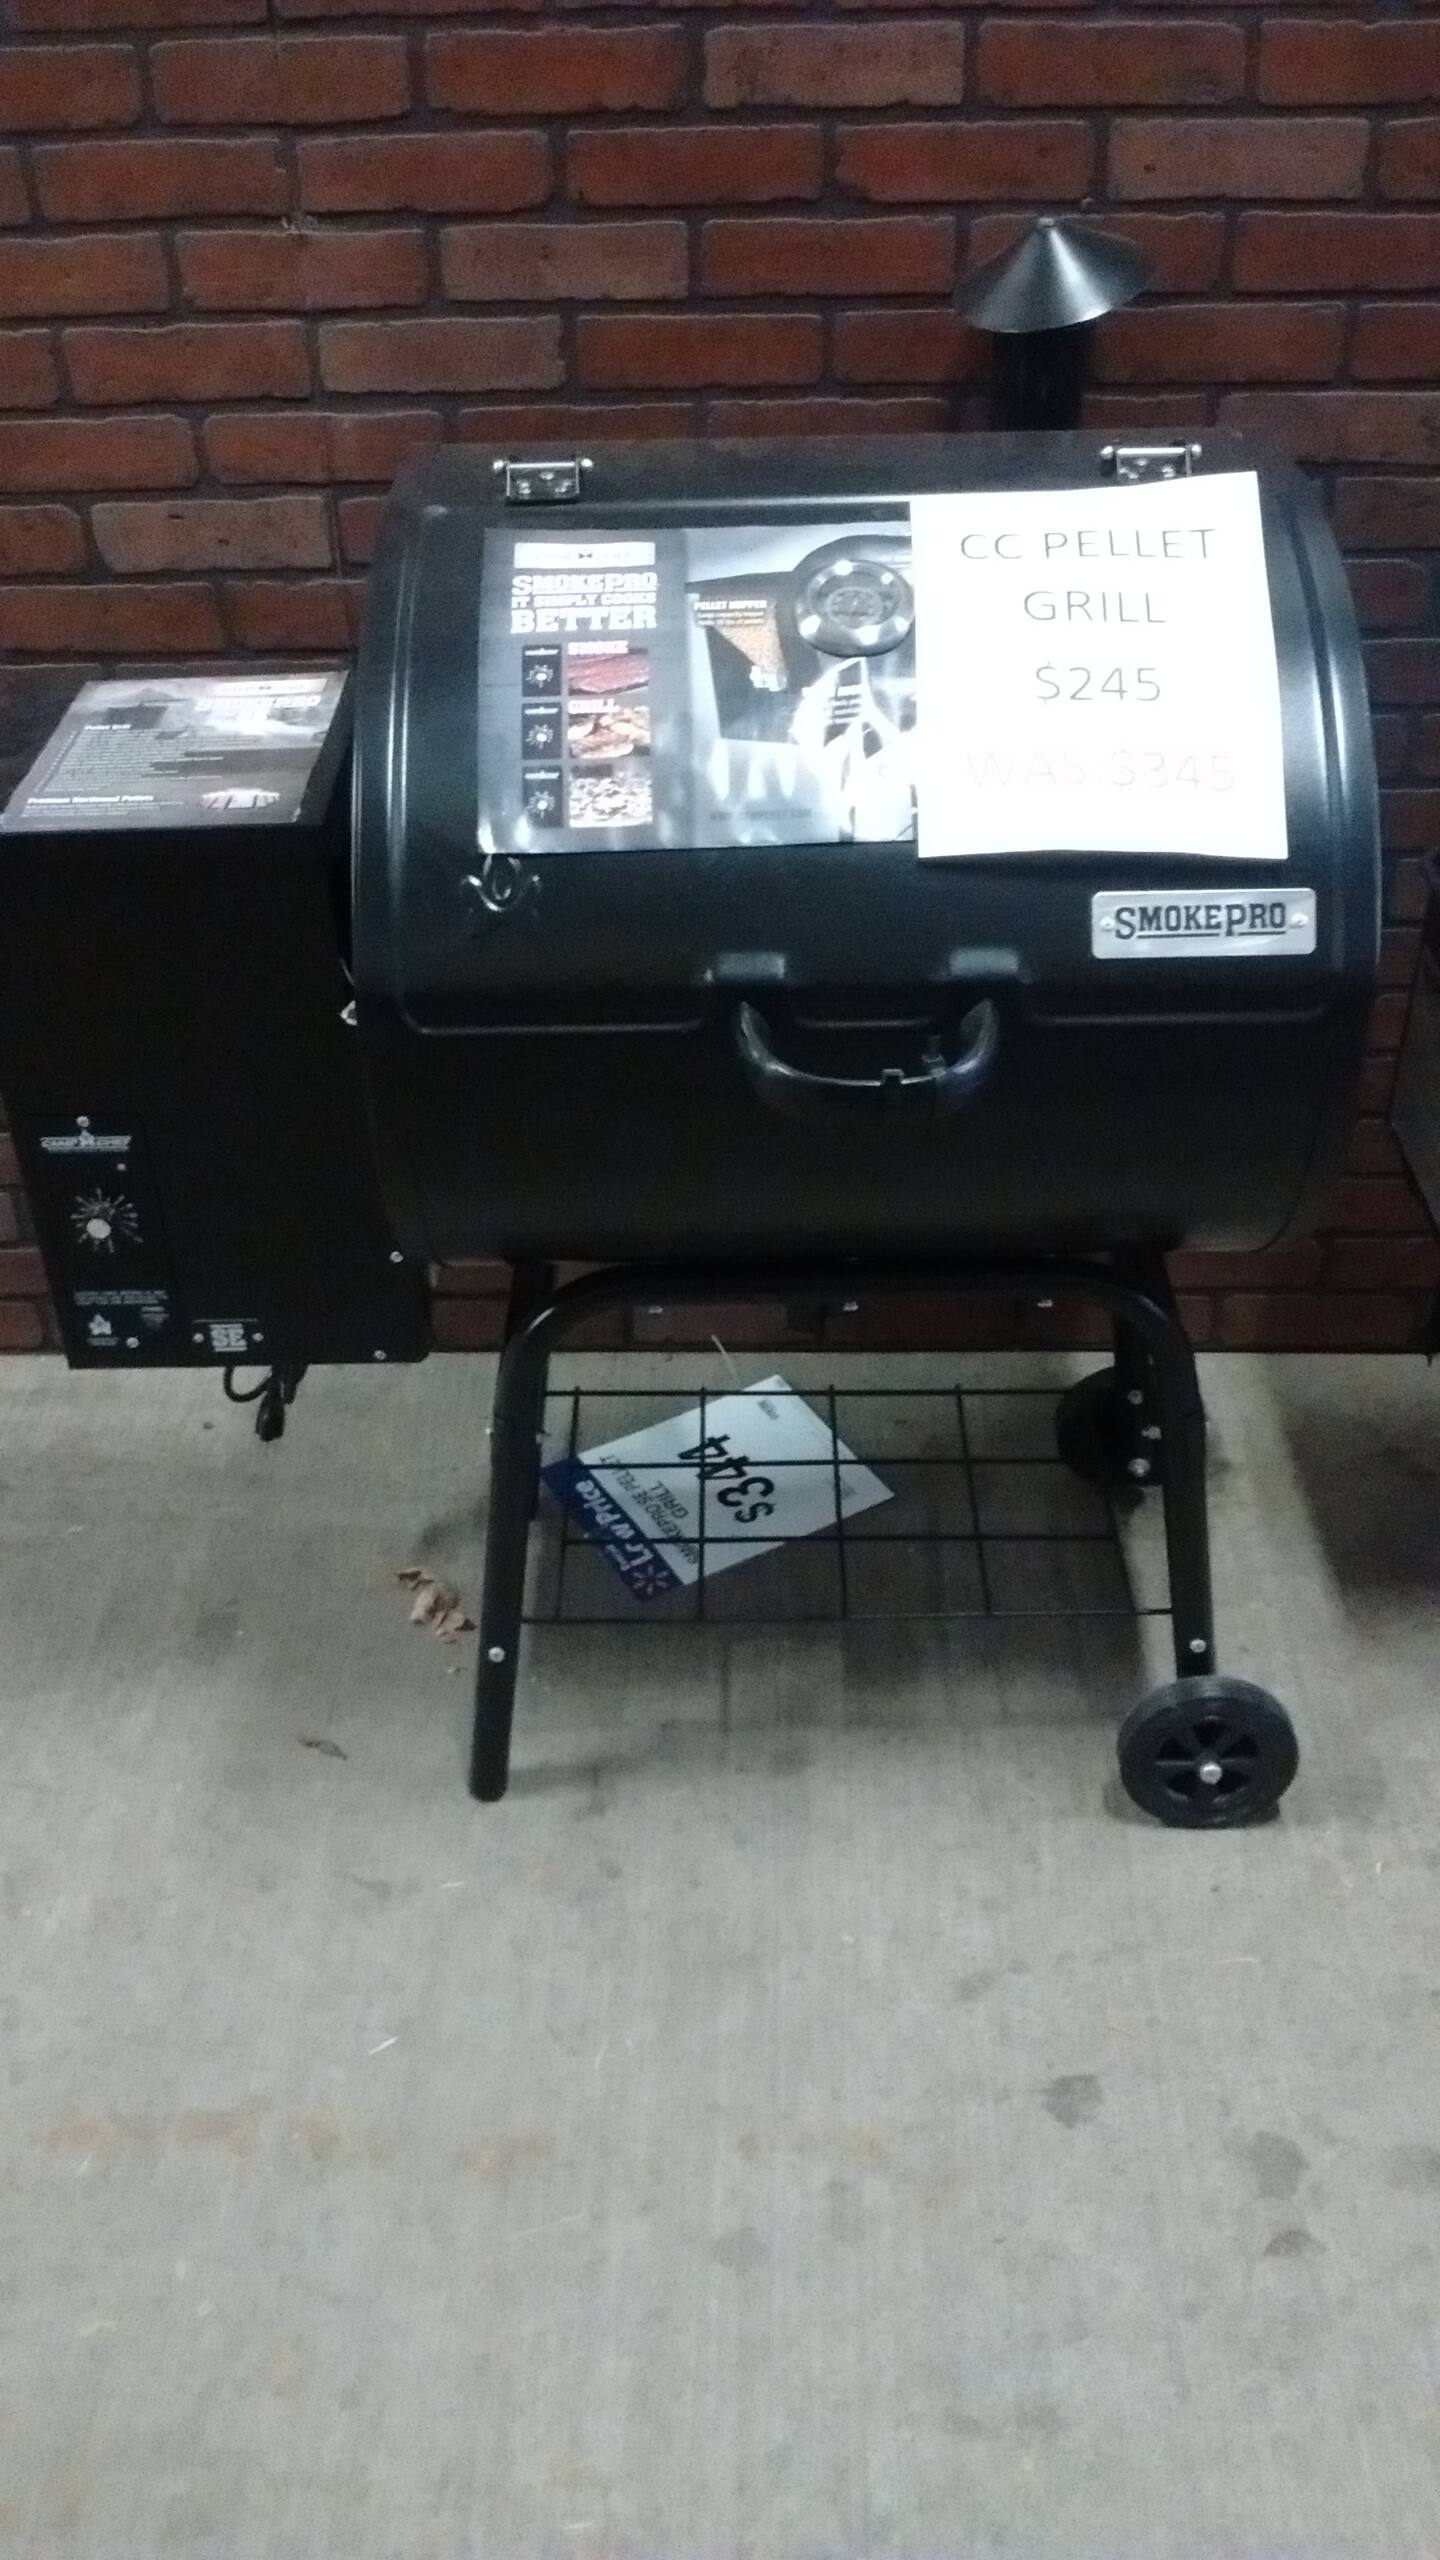 Camp Chef Pro SE grill/smoker ymmv $245